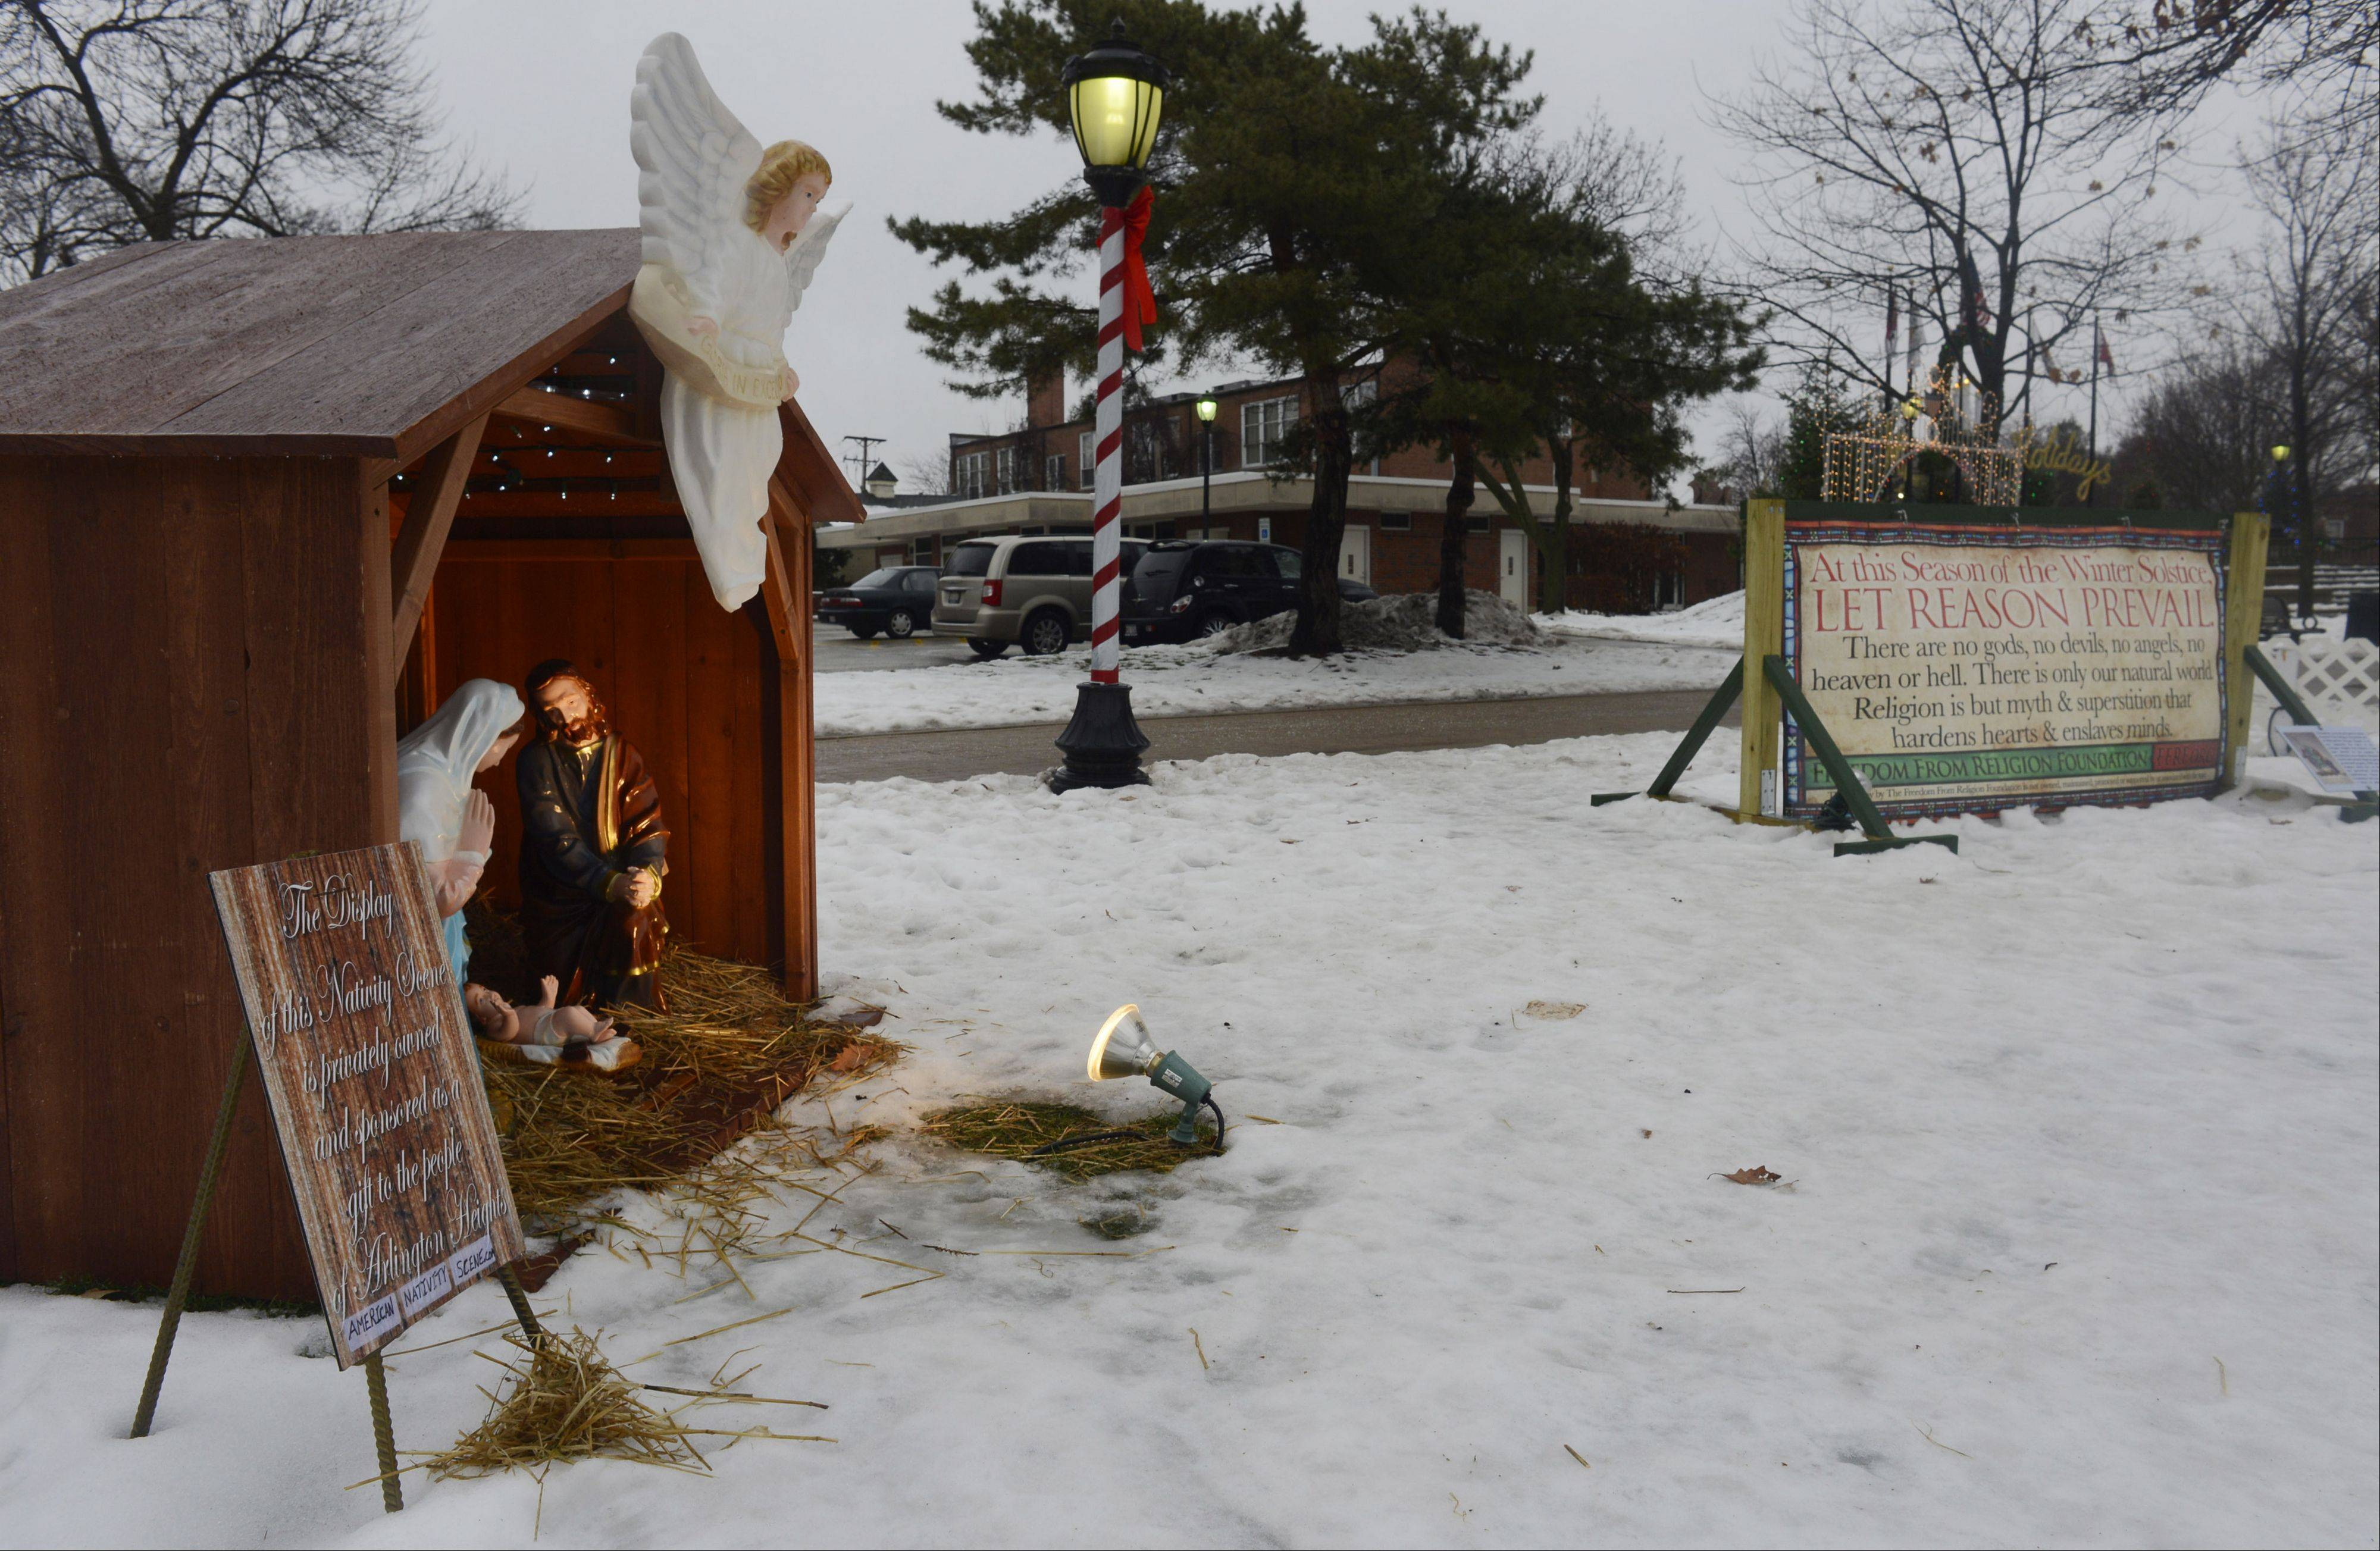 Nativity scene, anti-religion sign coexist in Arlington Heights park